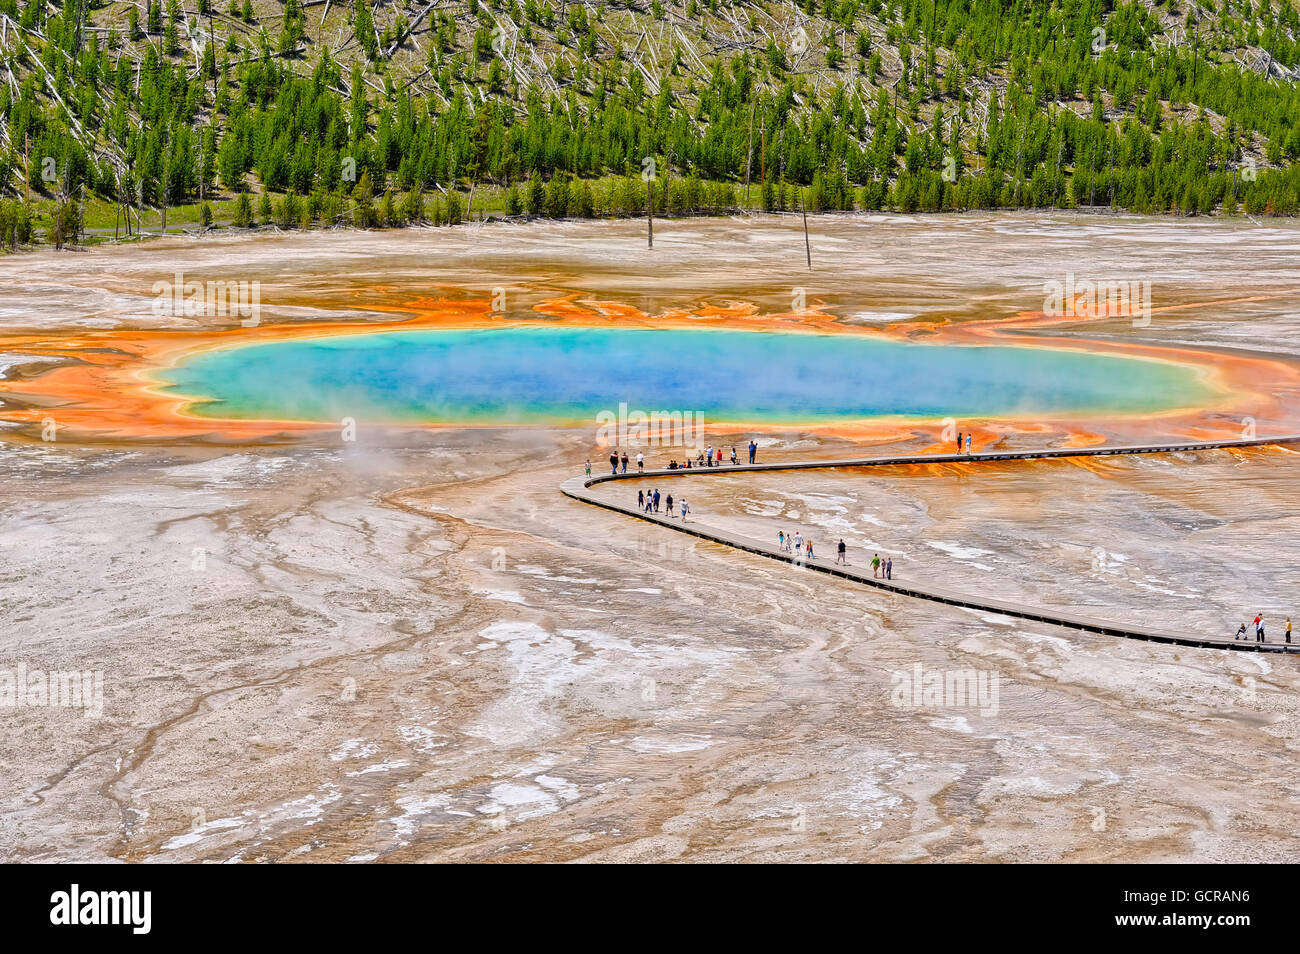 Visitors exploring the extraordinary colors and patterns for the Grand Prismatic Spring, Yellowstone National Park - Stock Image